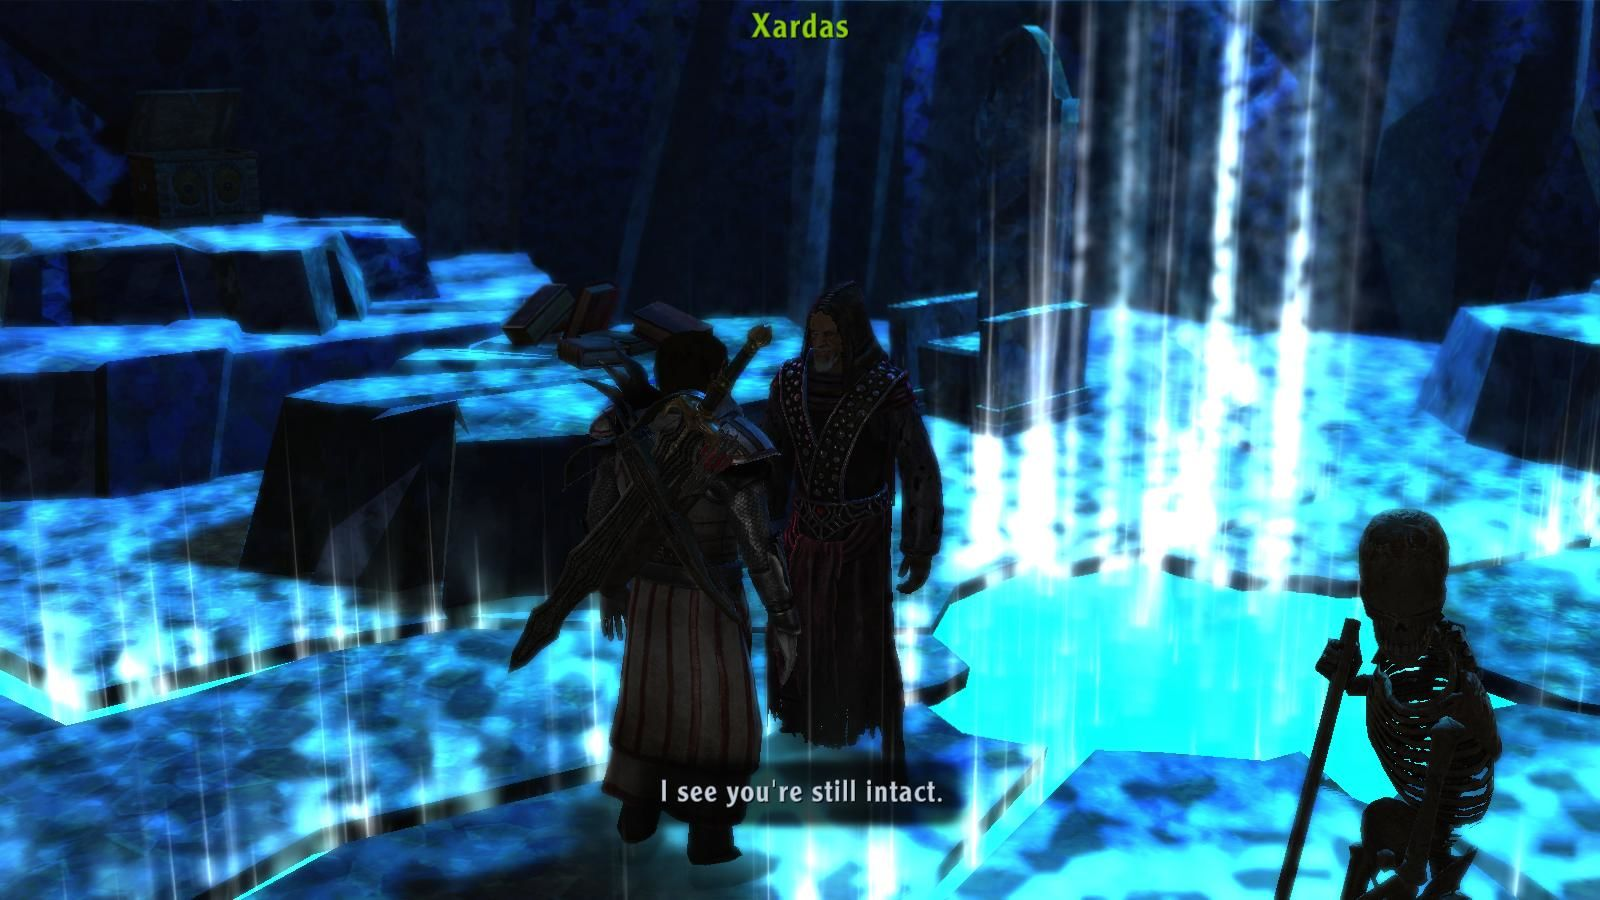 ArcaniA: Gothic 4 Windows Xardas still uses a skeleton servant.